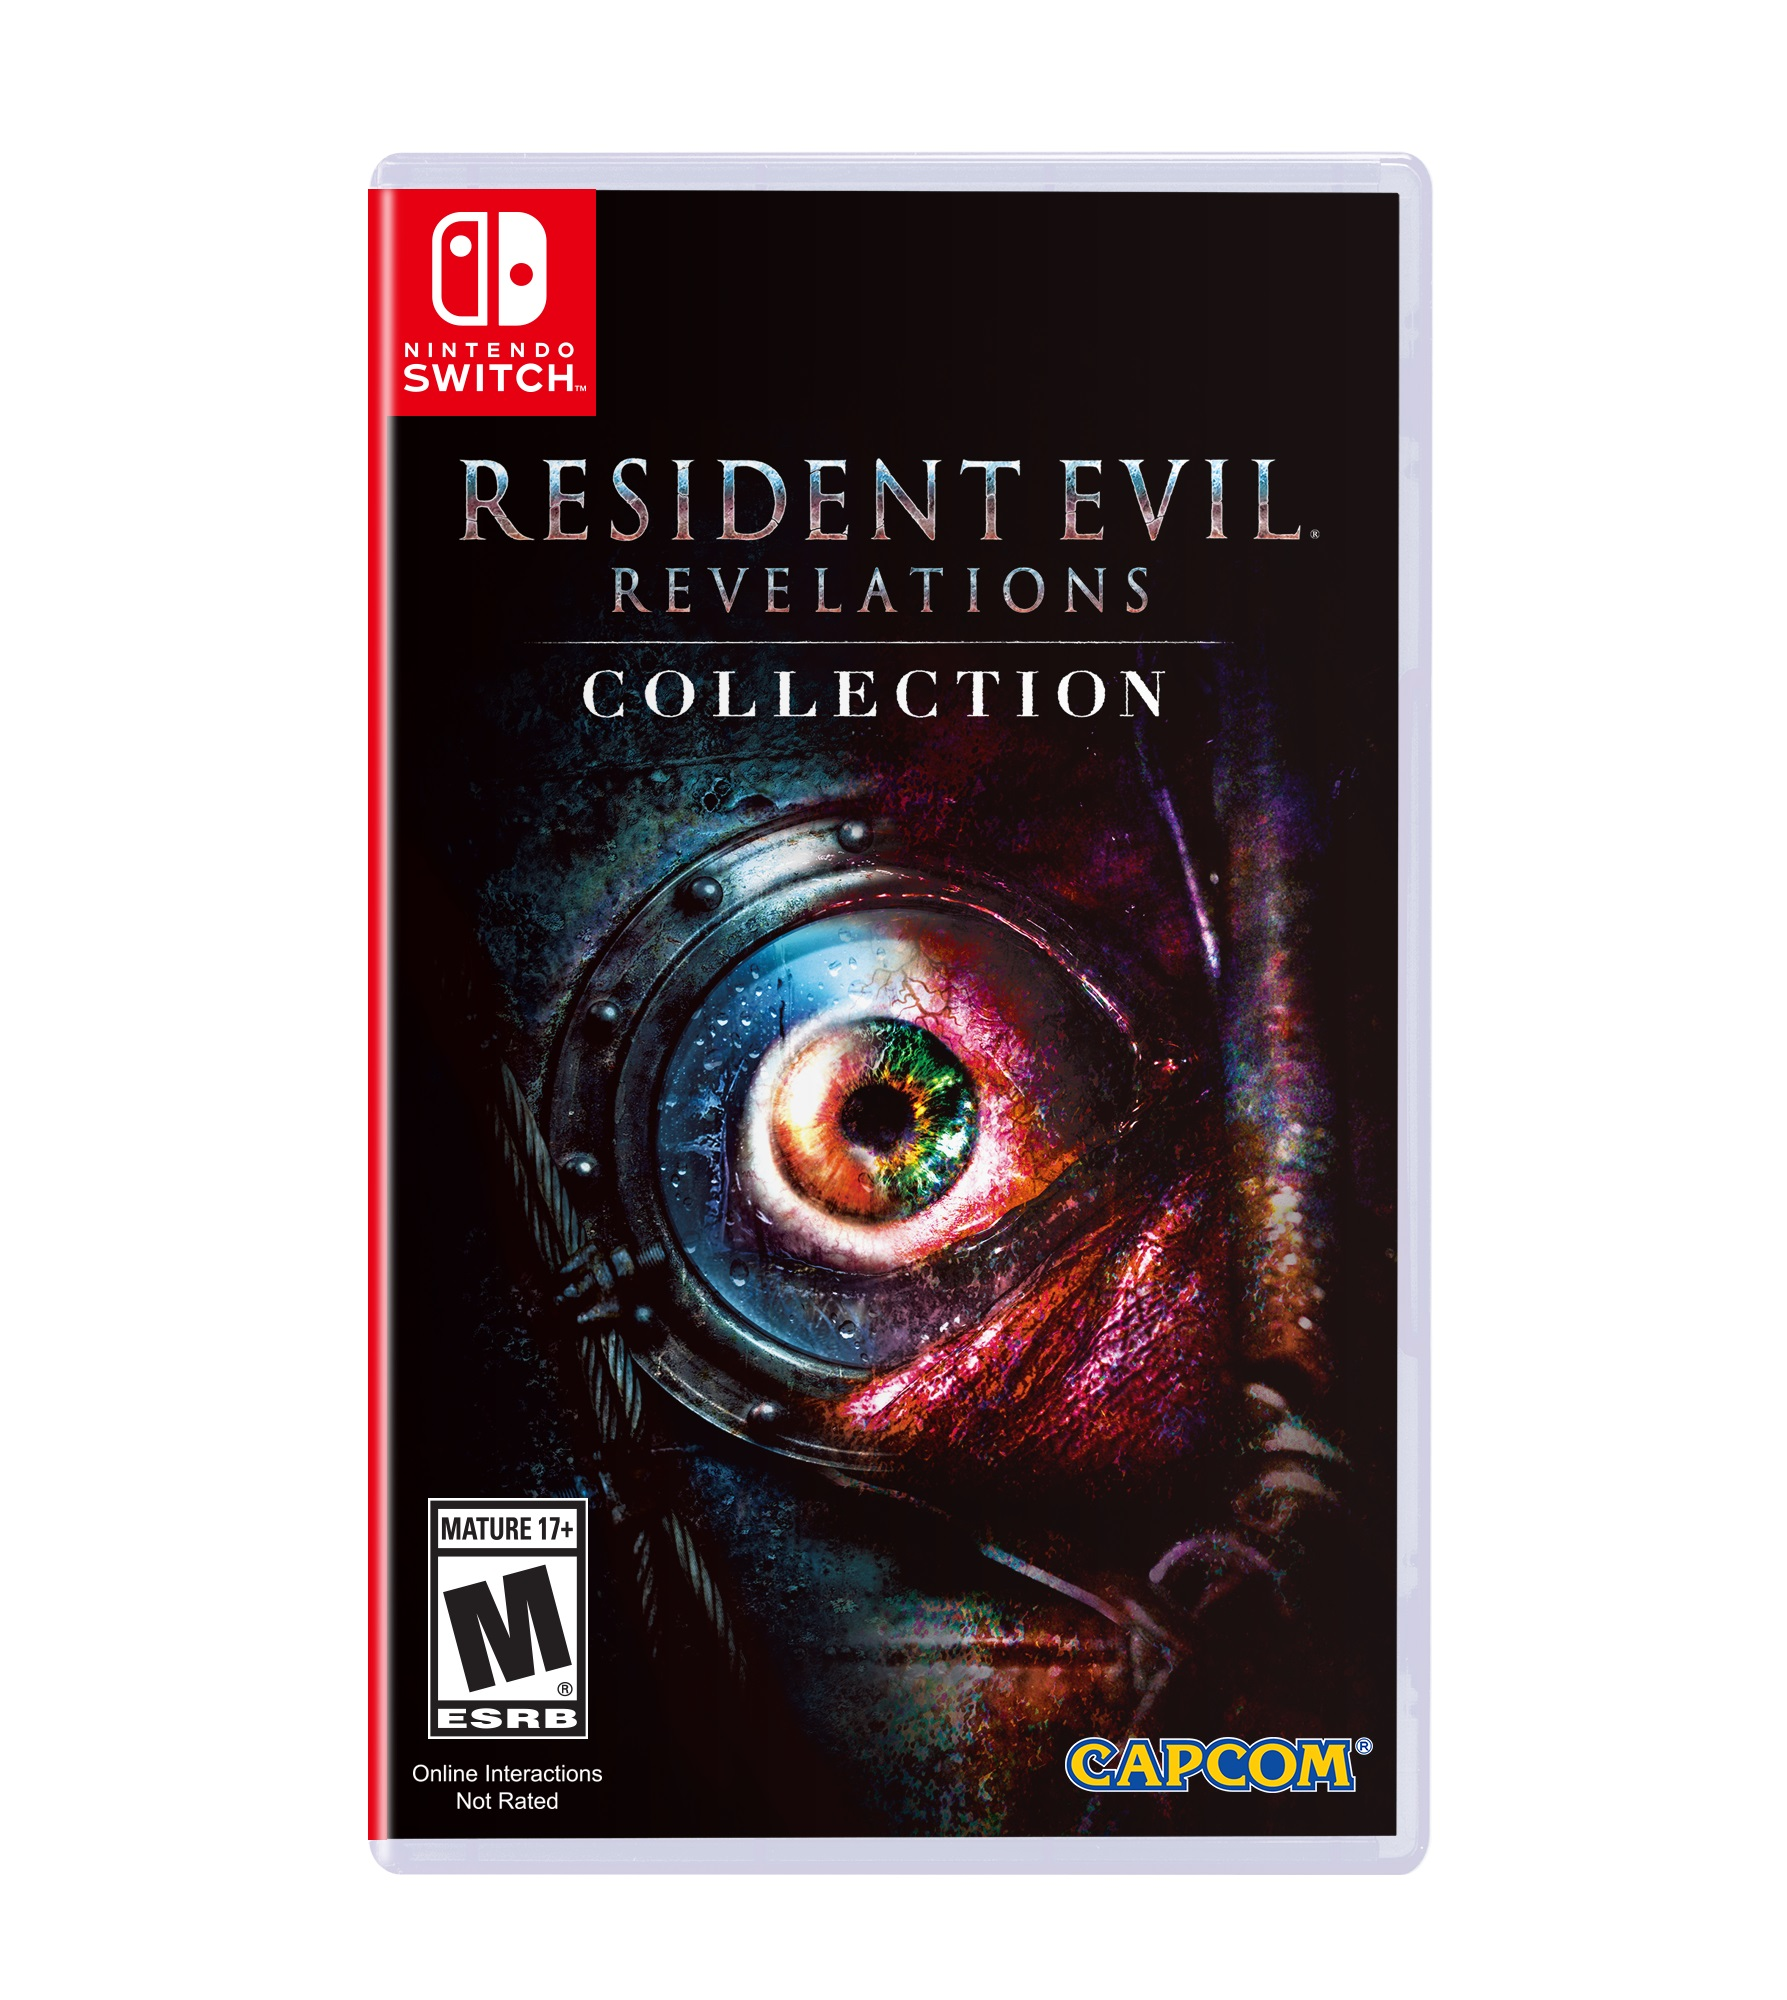 http://www.perfectly-nintendo.com/wp-content/gallery/resident-evil-revelations-11-09-2017/1.jpg